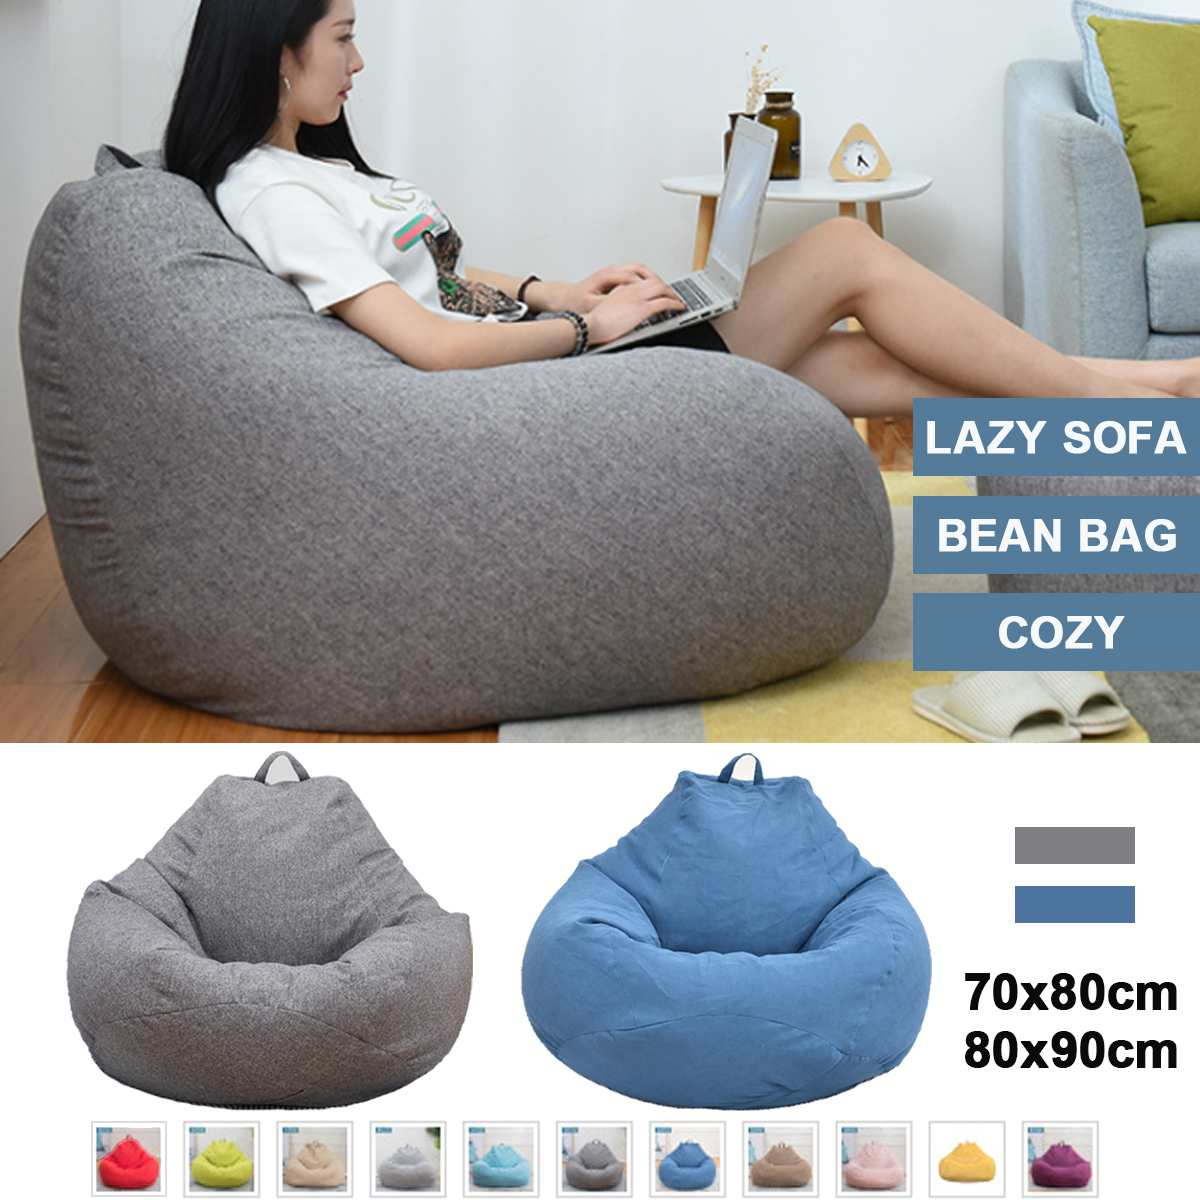 Chair Sofa Seat-Bean-Bag Lounger Animal-Ottoman Stuffed Waterproof Without-Filling